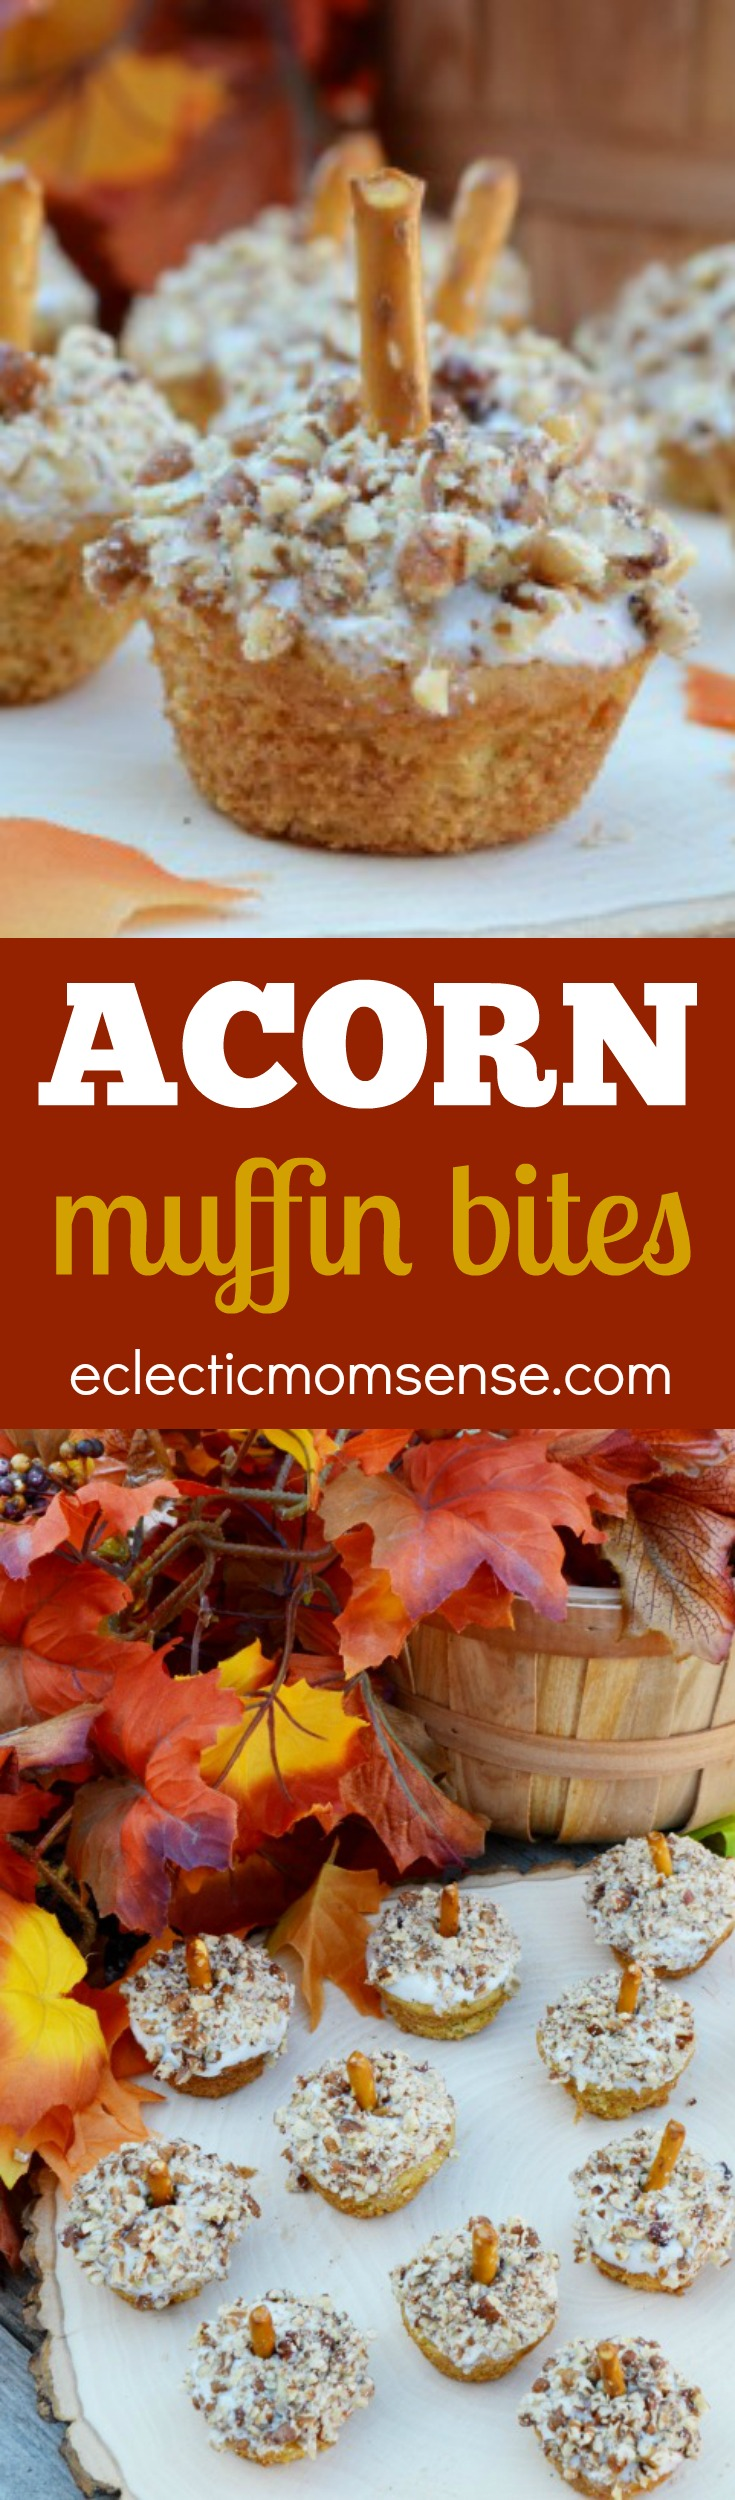 Pumpkin Spice Mini Muffins | Delicious on their own or dressed up to look like acorns for the season.